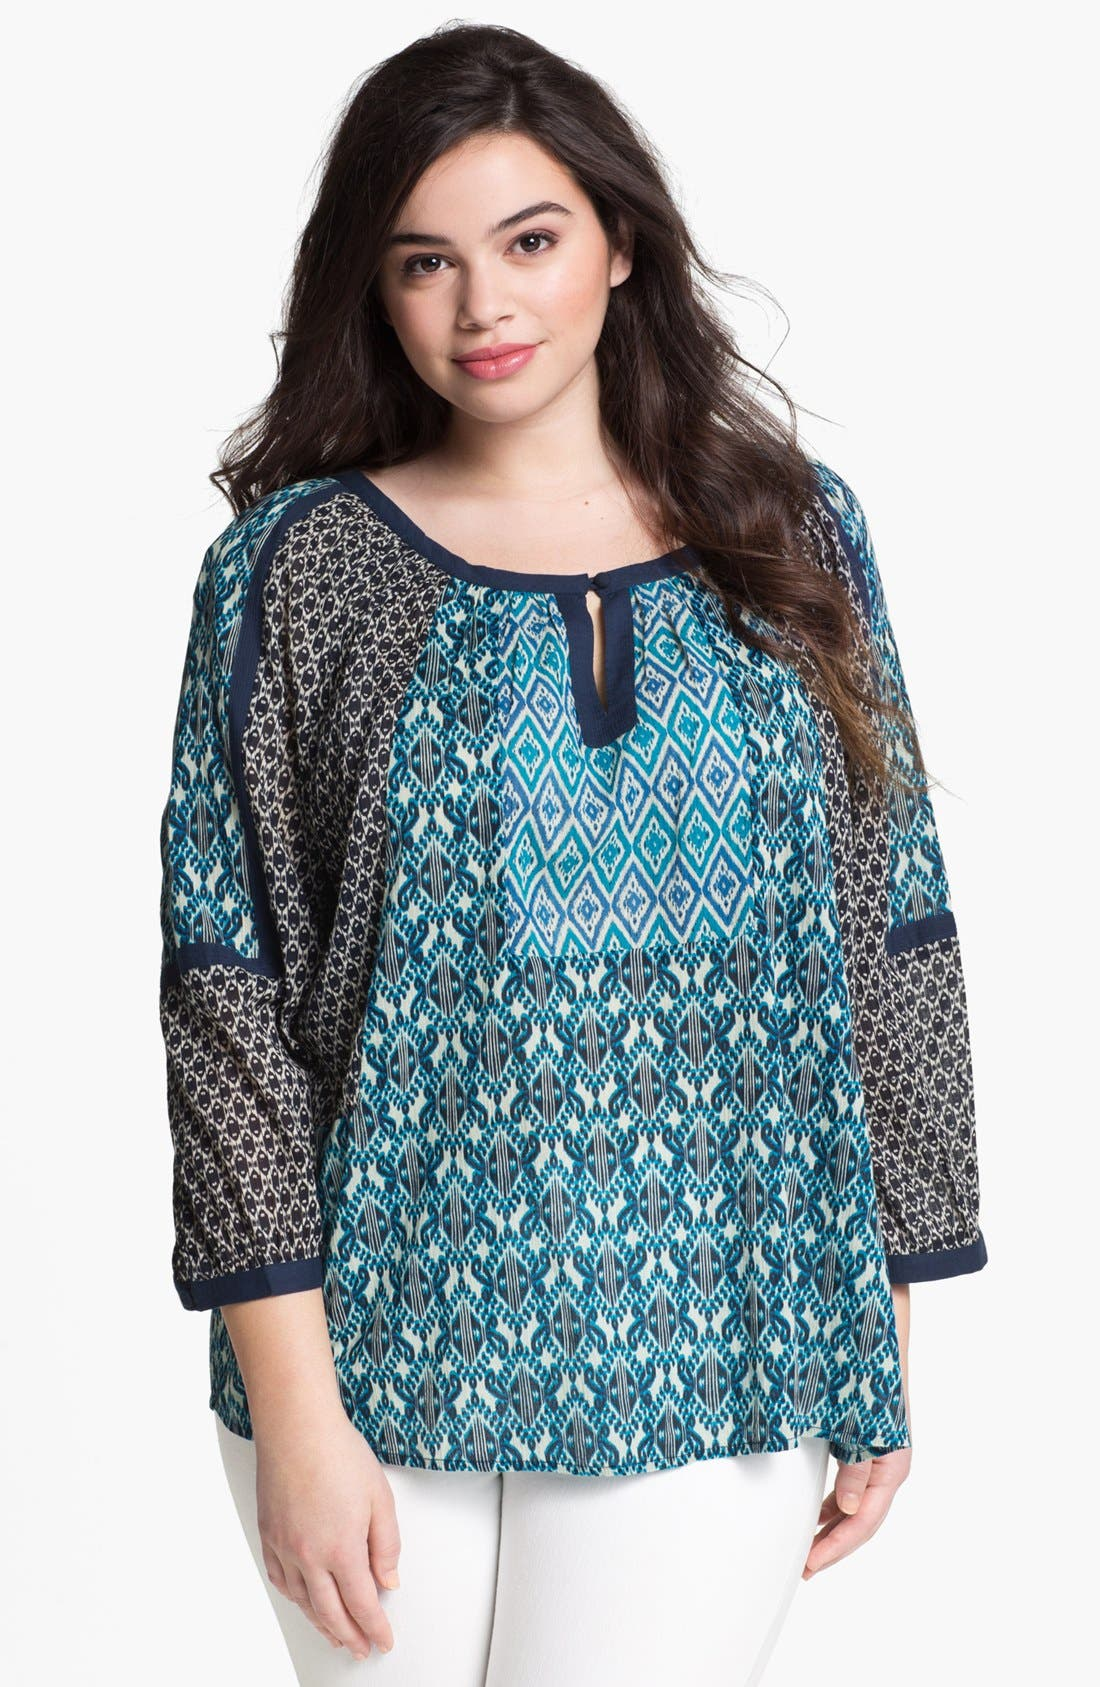 Alternate Image 1 Selected - Lucky Brand 'Bali' Geo Print Blouse (Plus Size)